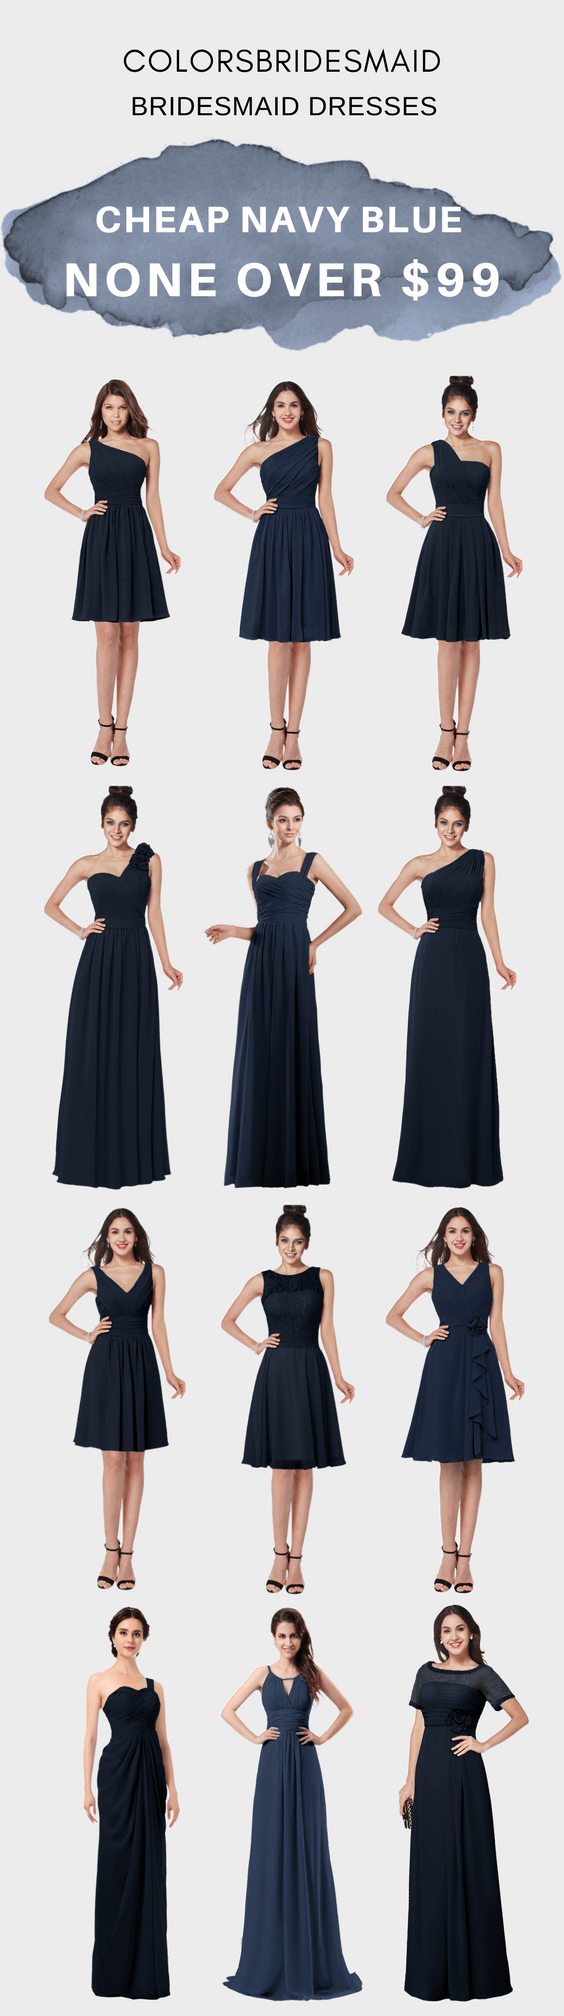 455c132d18a3a Bridesmaid Dresses With Sleeves Under 100